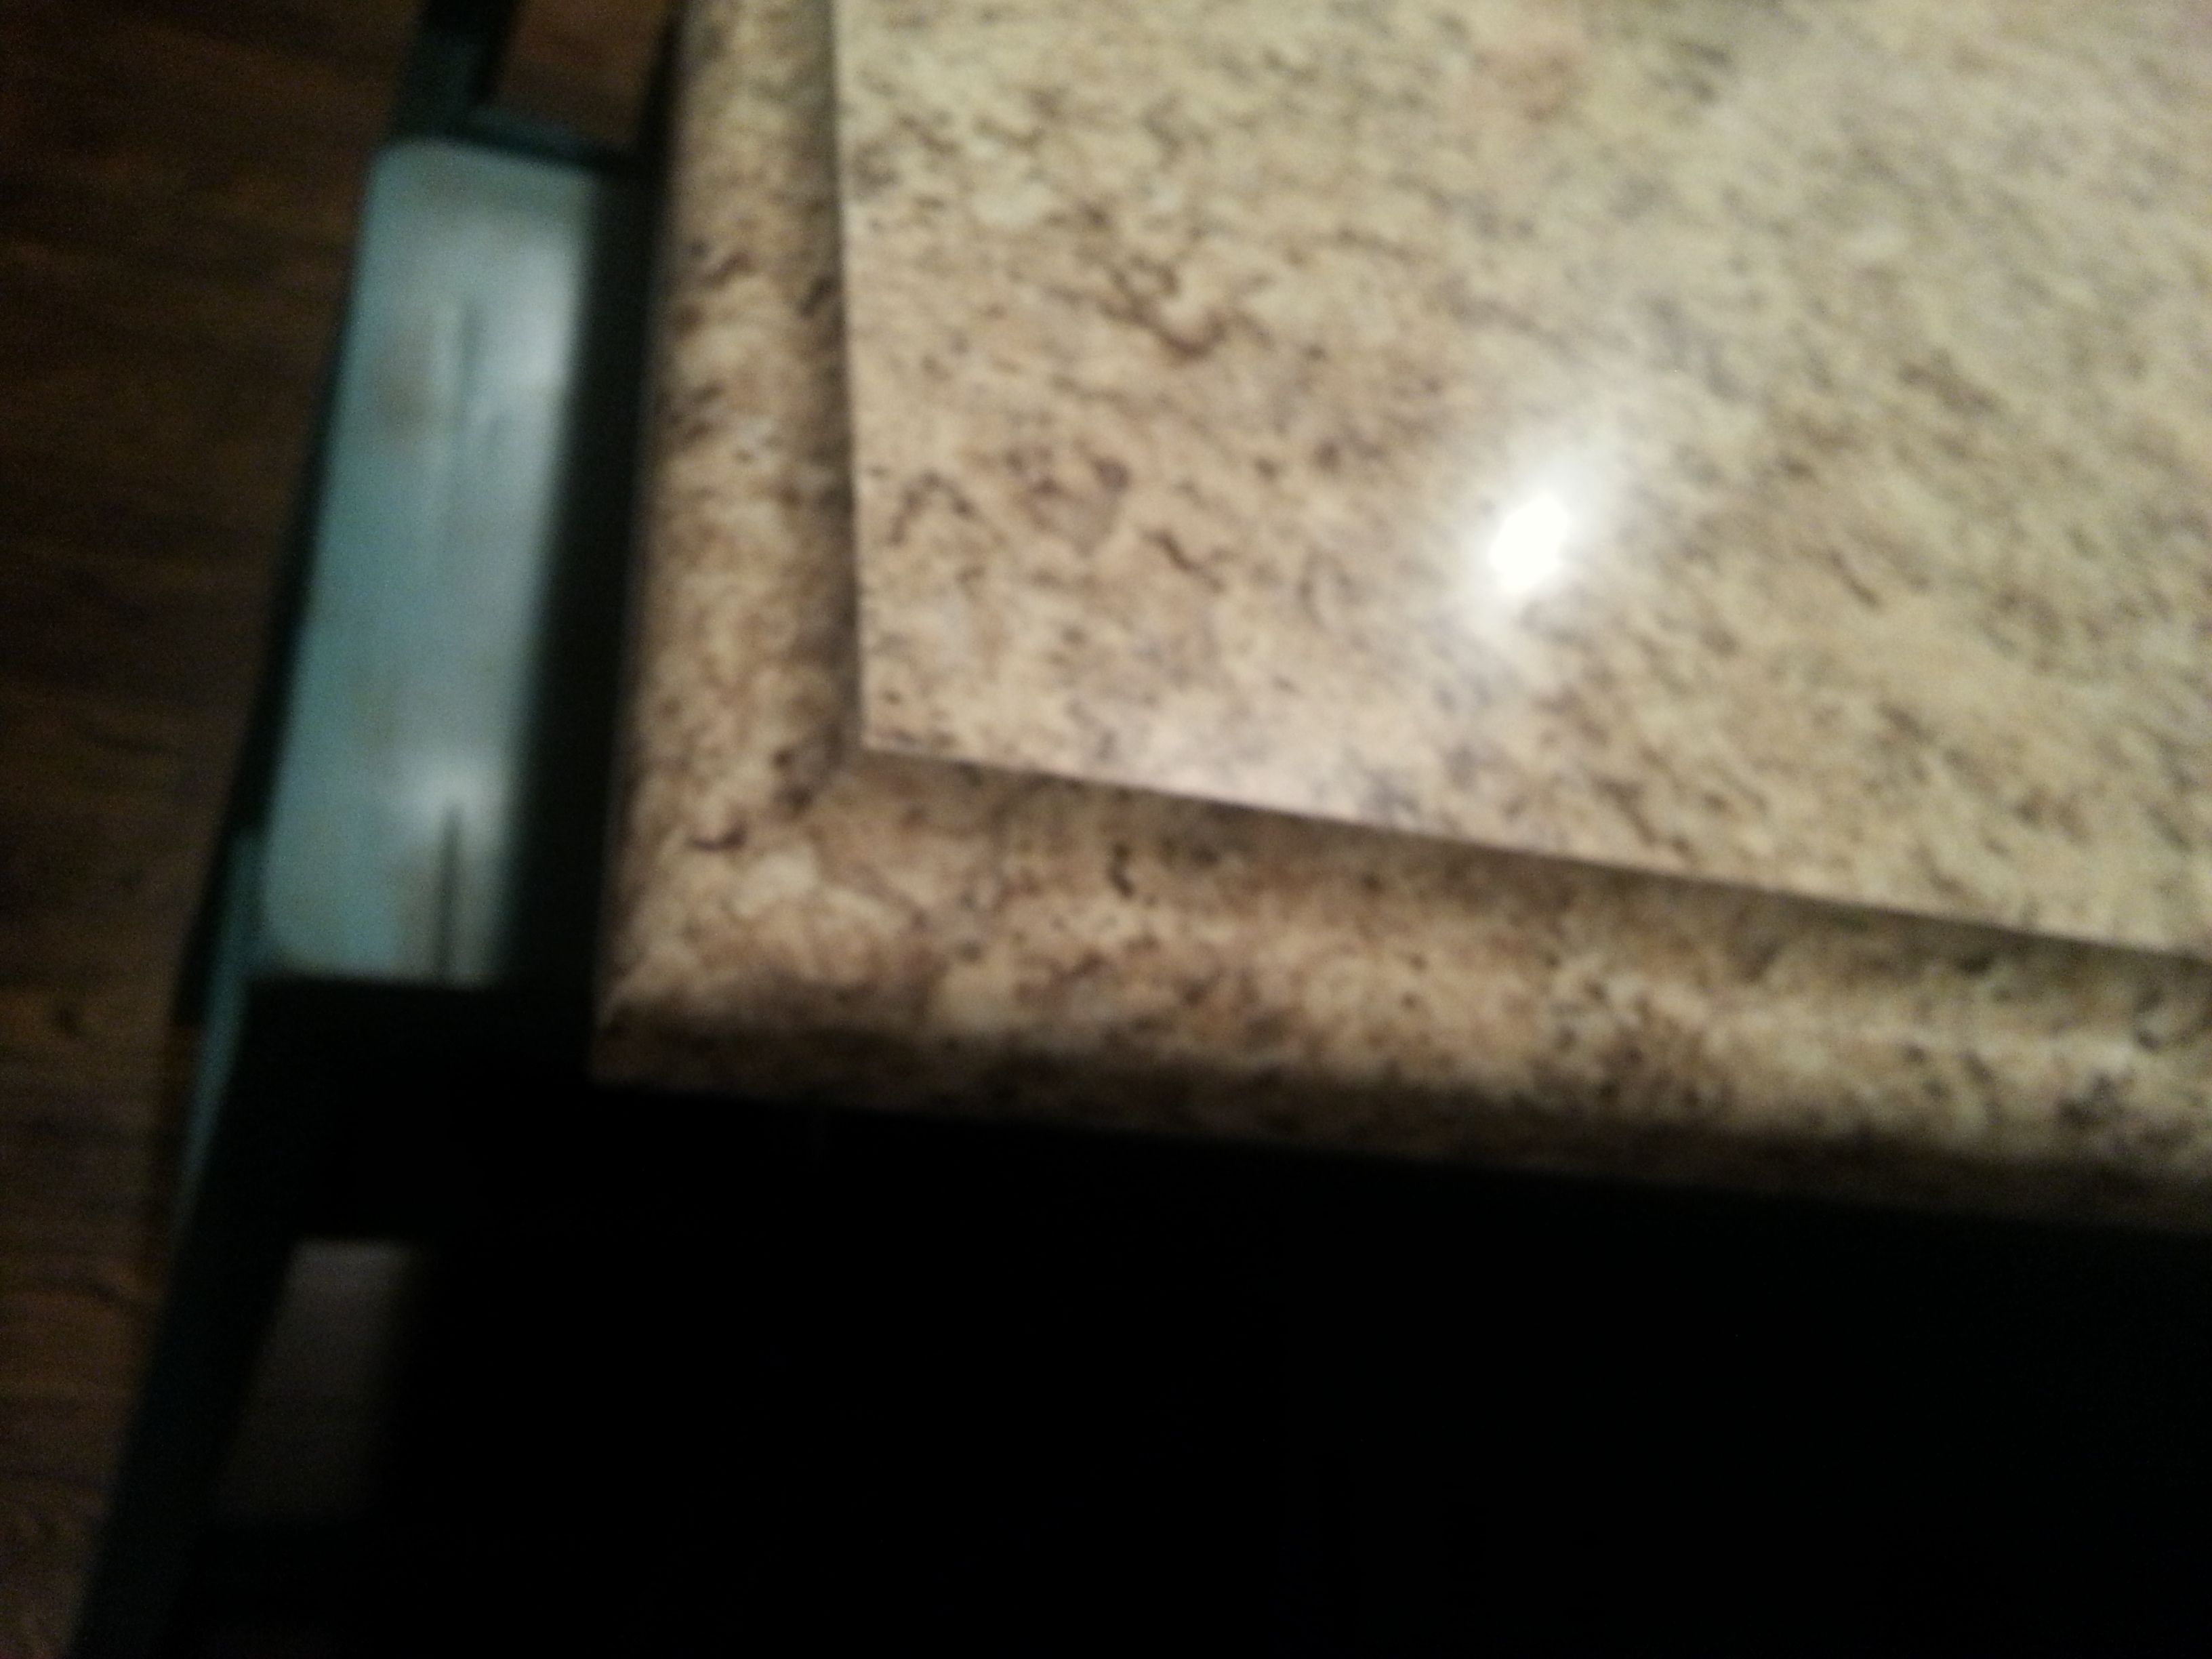 to cut exchange edge image vanity countertops bathroom description enter of home countertop improvement how questions stack here trim